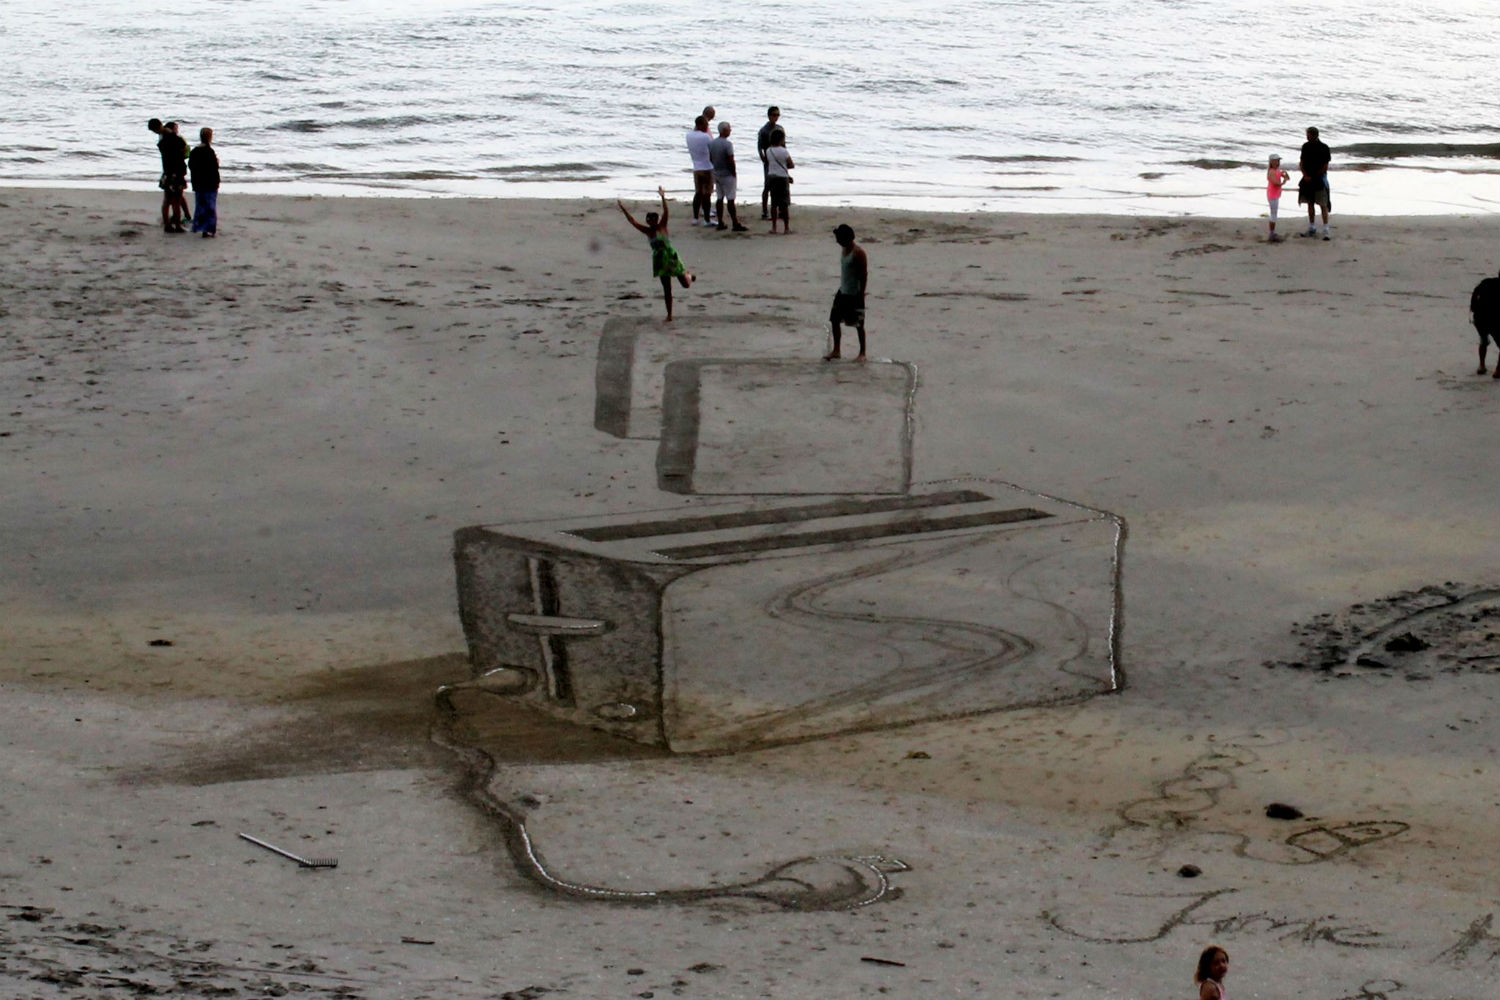 jamie harkins 3d art beach nz